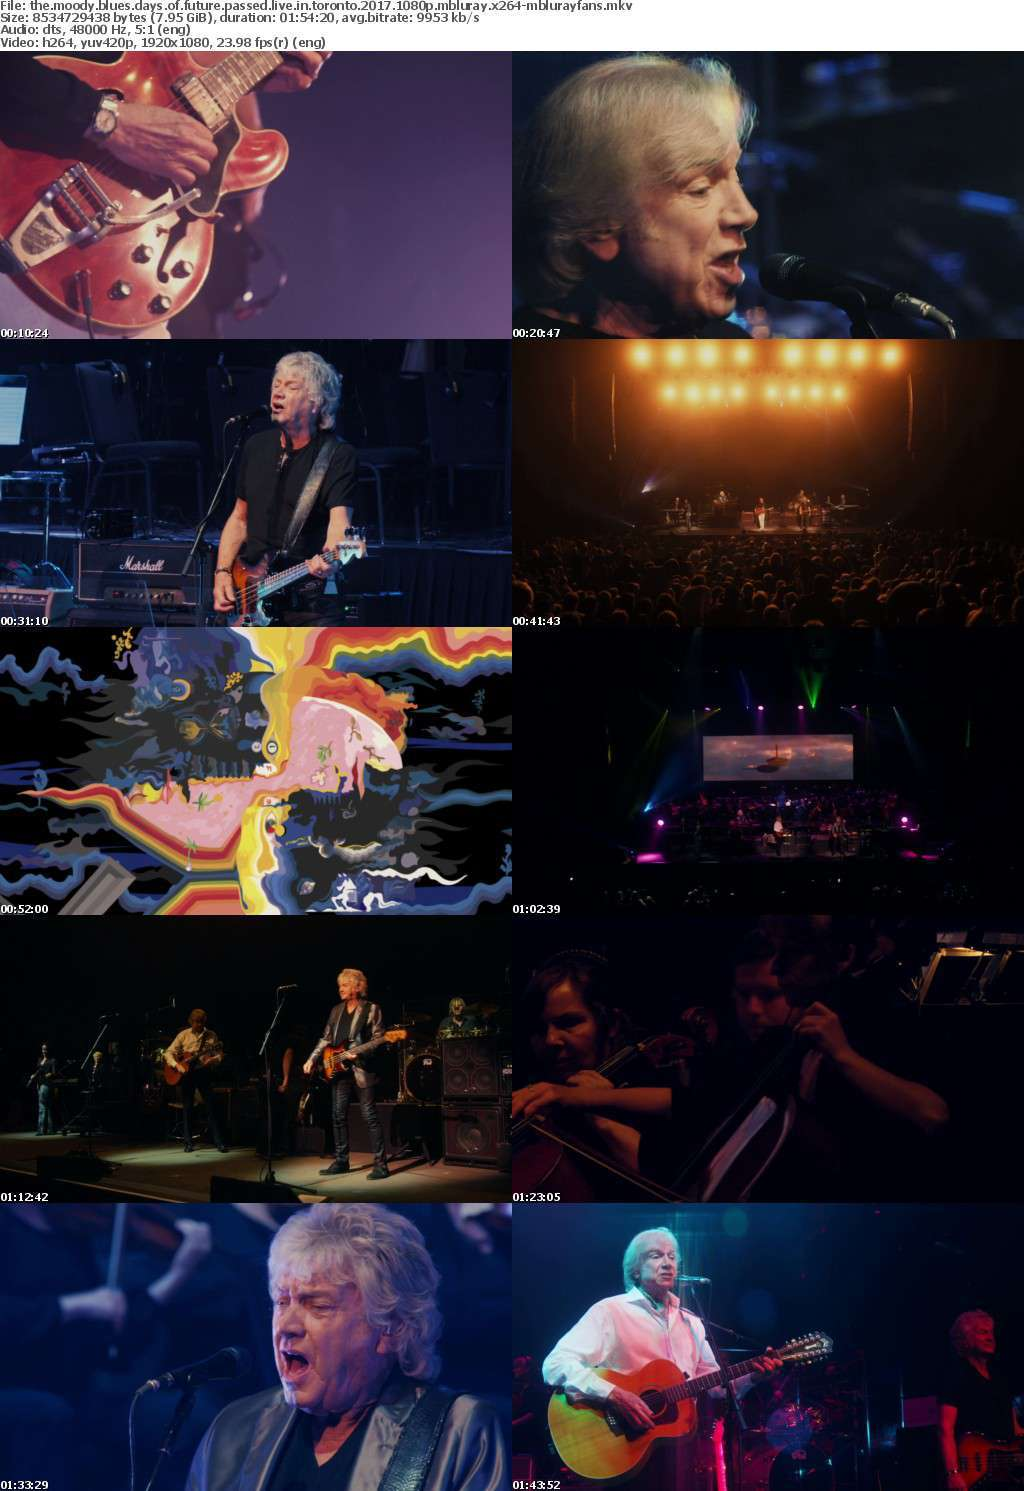 The Moody Blues Days Of Future Passed Live in Toronto 2017 1080p MBLURAY x264-MBLURAYFANS